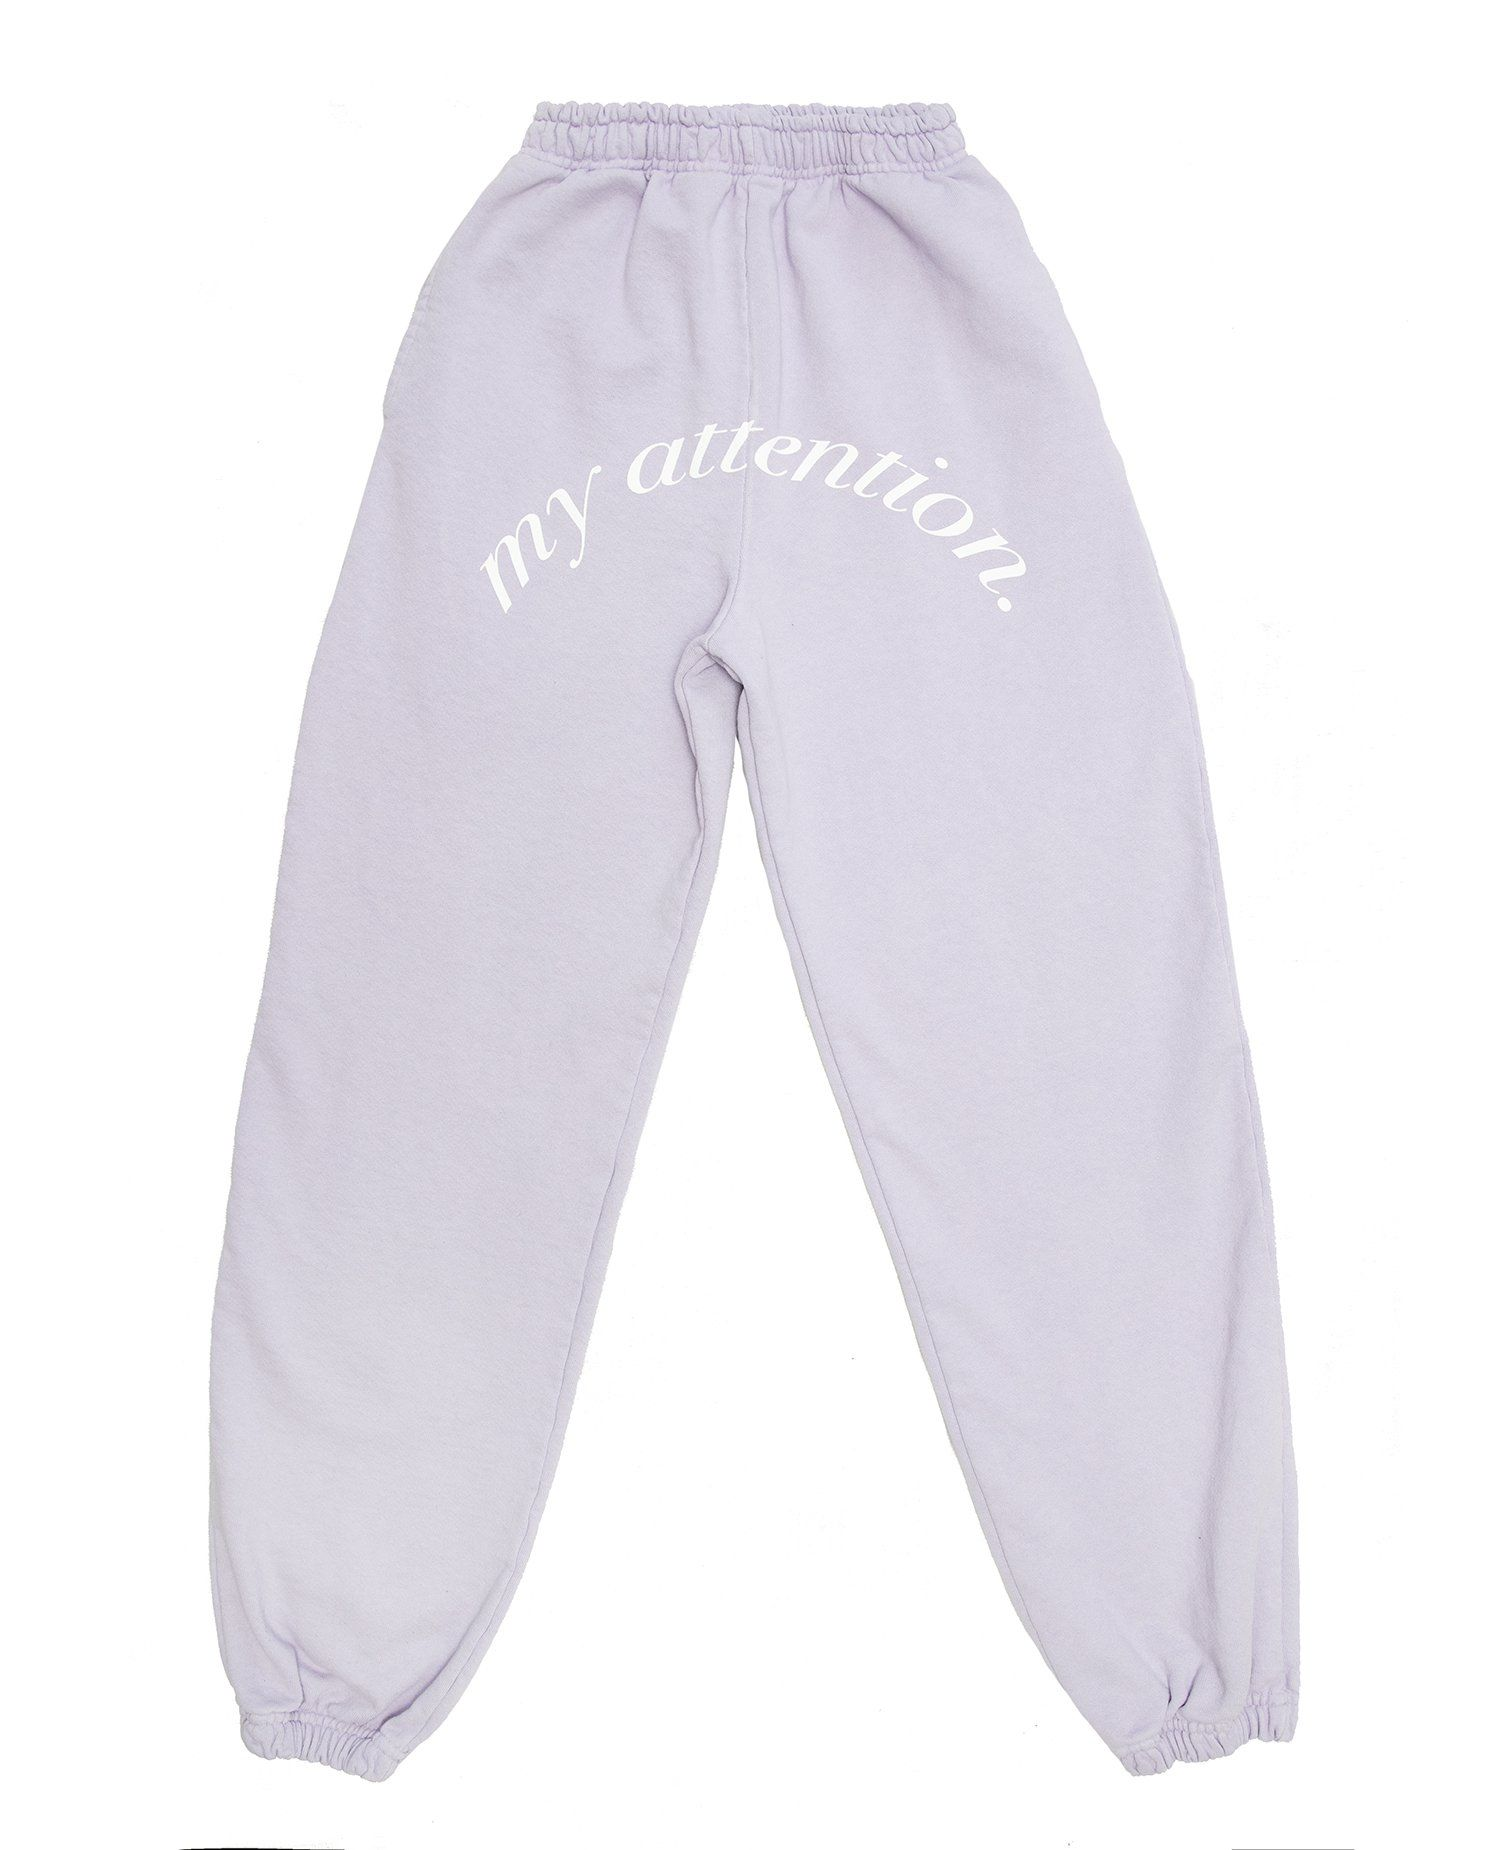 My Attention Sweatpants Boys Lie In 2020 Cute Sweatpants Aesthetic Clothes Cute Sweatpants Outfit